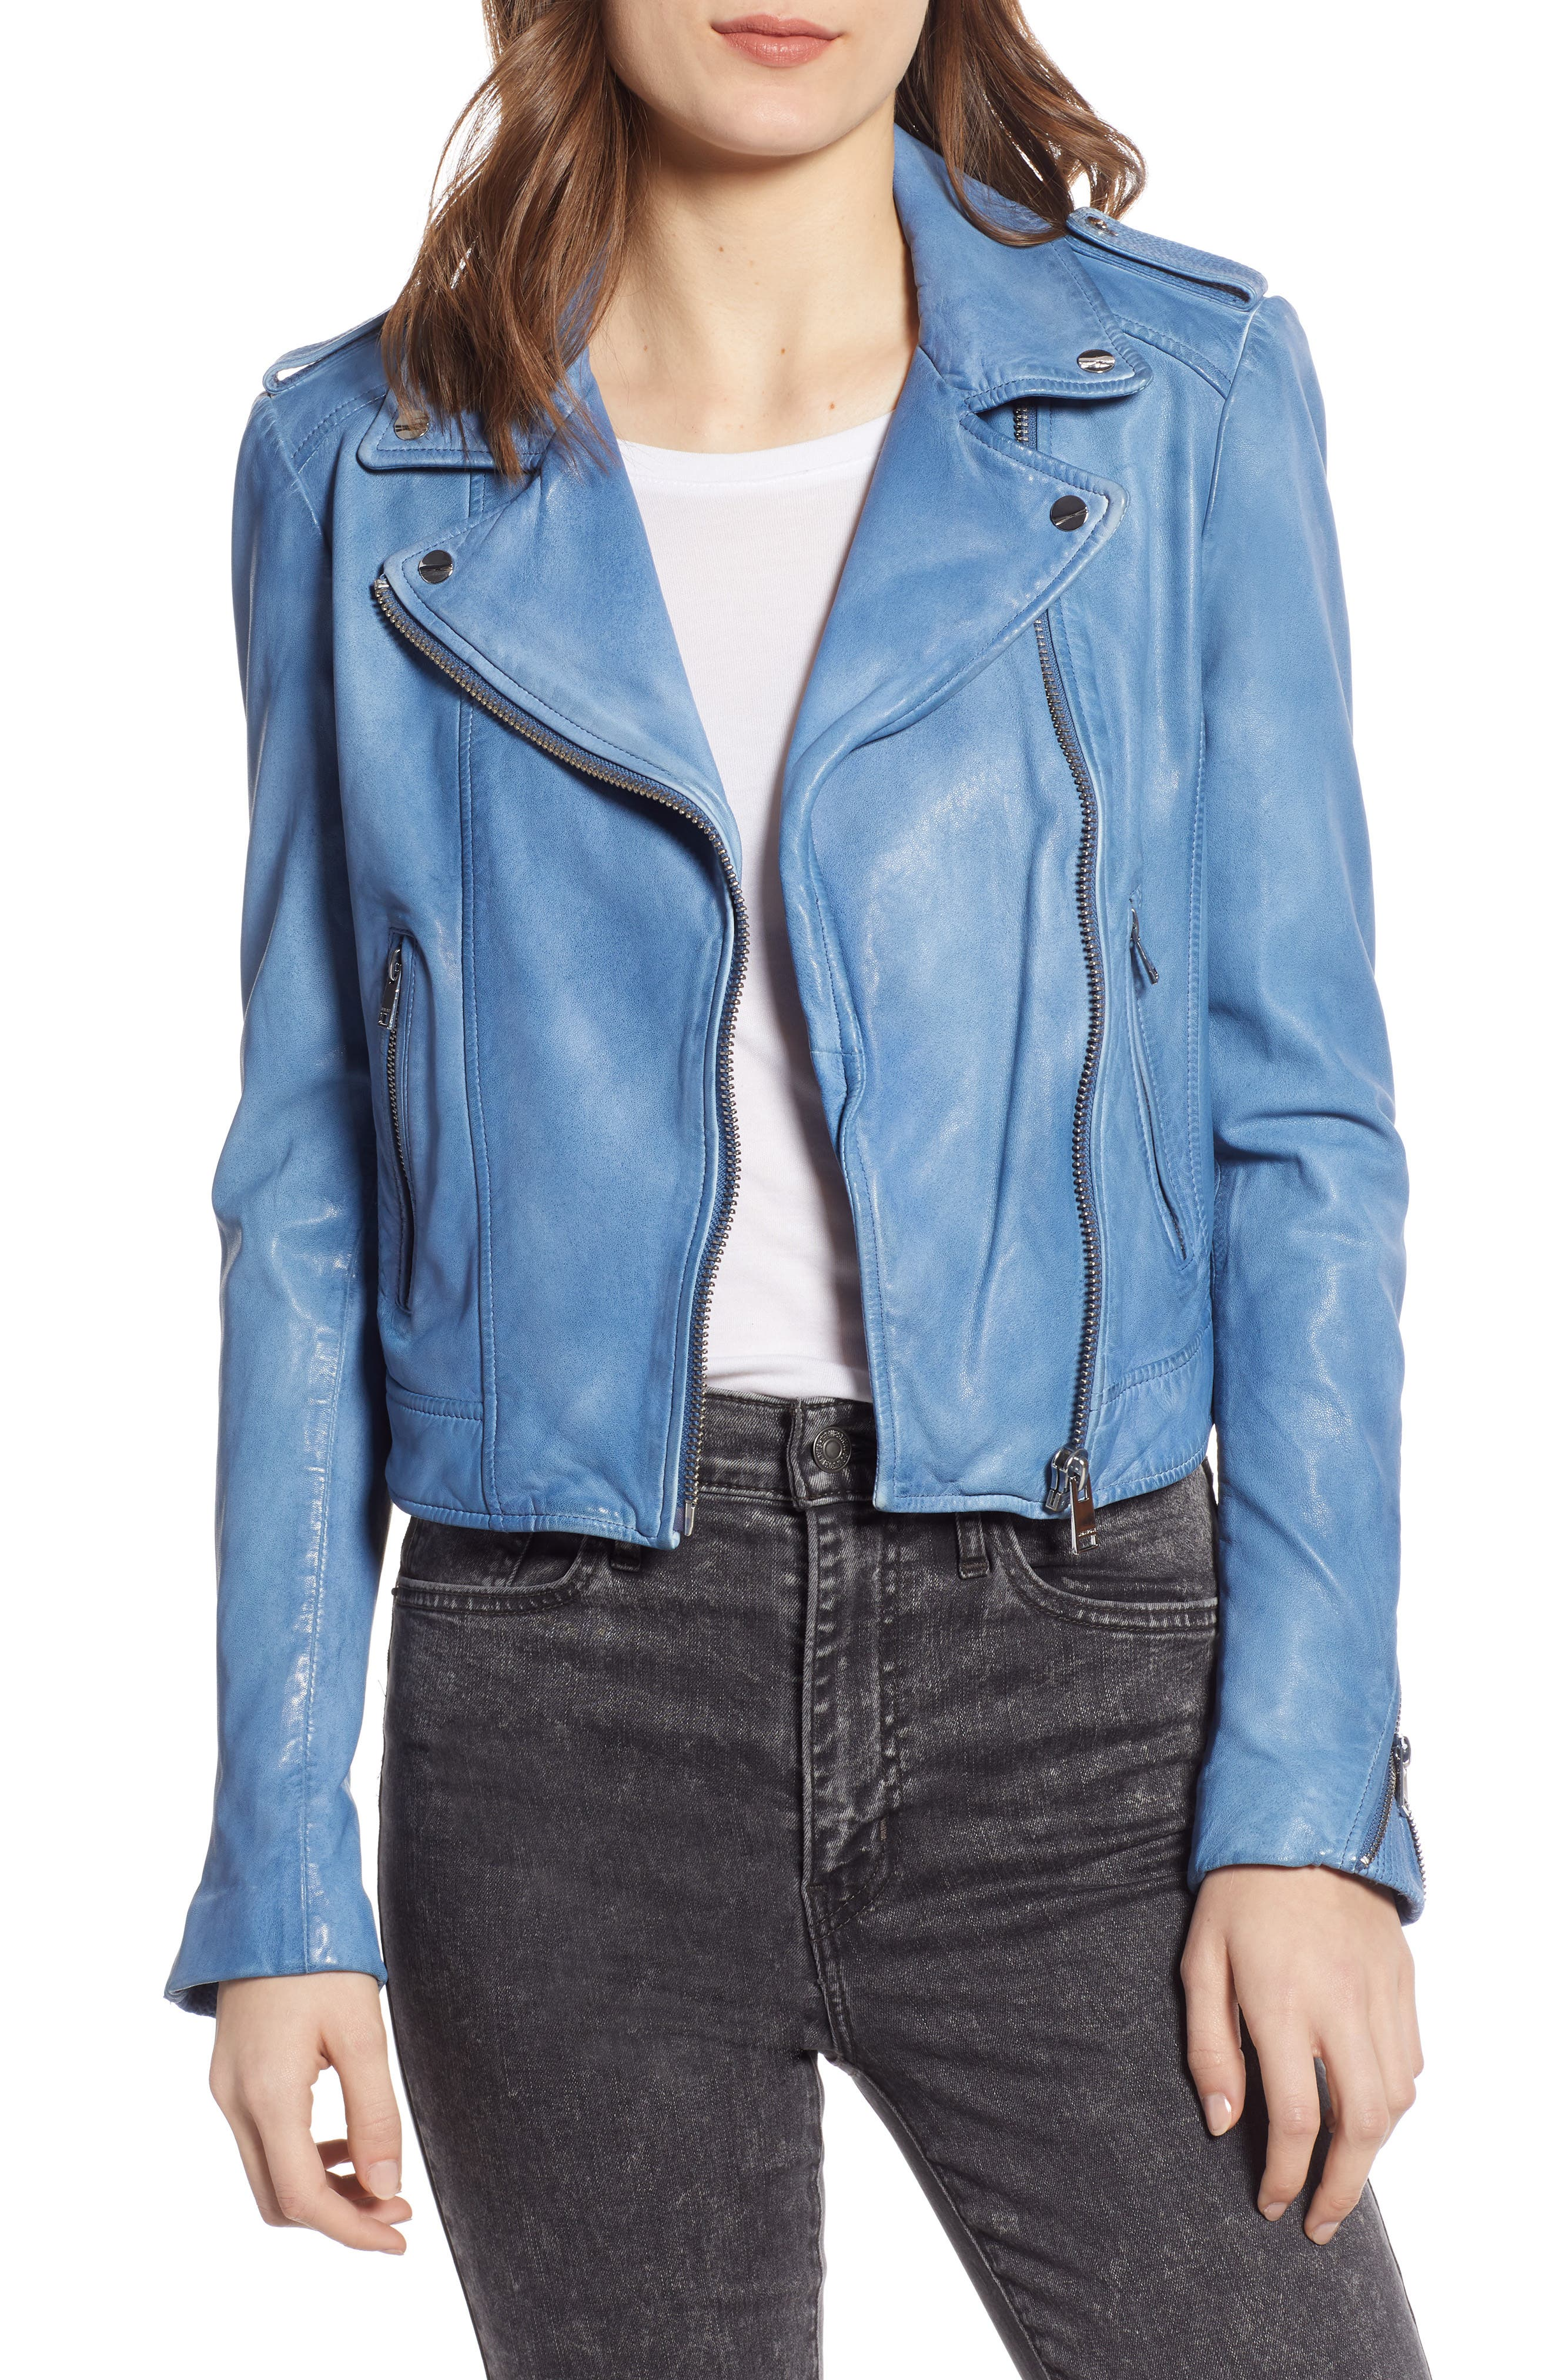 LAMARQUE Donna Lambskin Leather Moto Jacket, Main, color, FADED DENIM